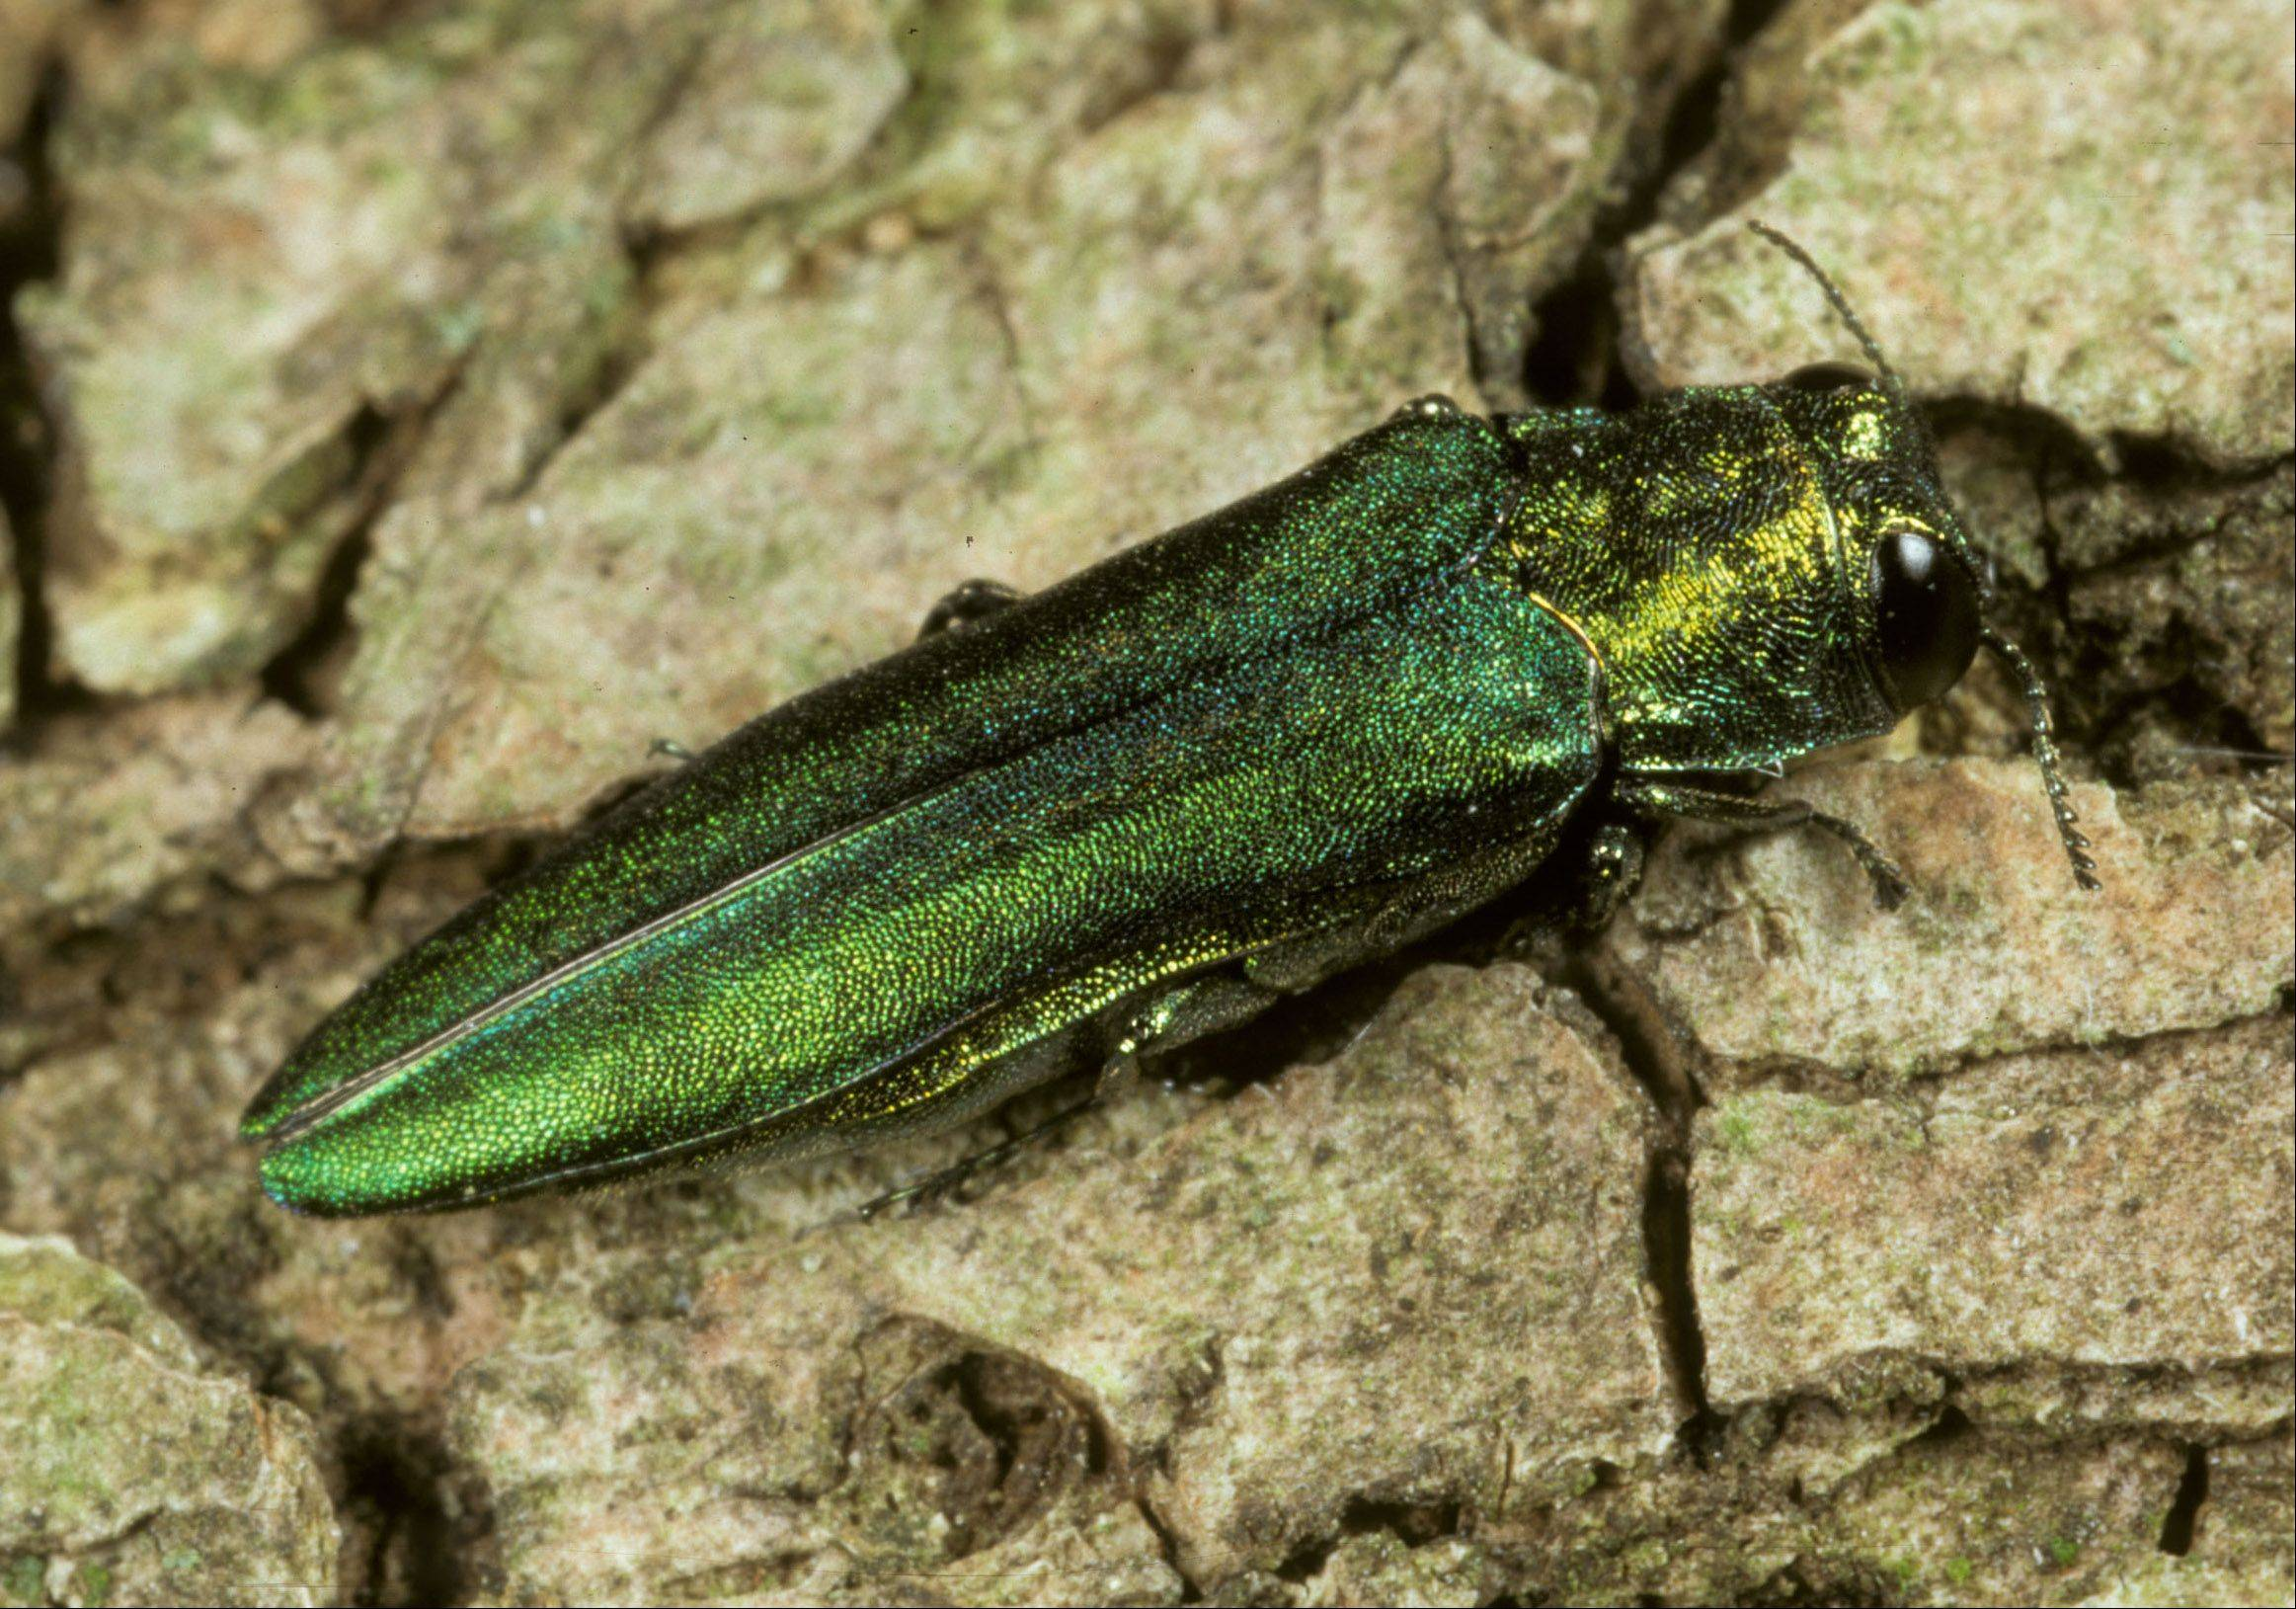 Emerald ash borers have been found in Elk Grove Village, which plans to replace 300 infested trees this winter.